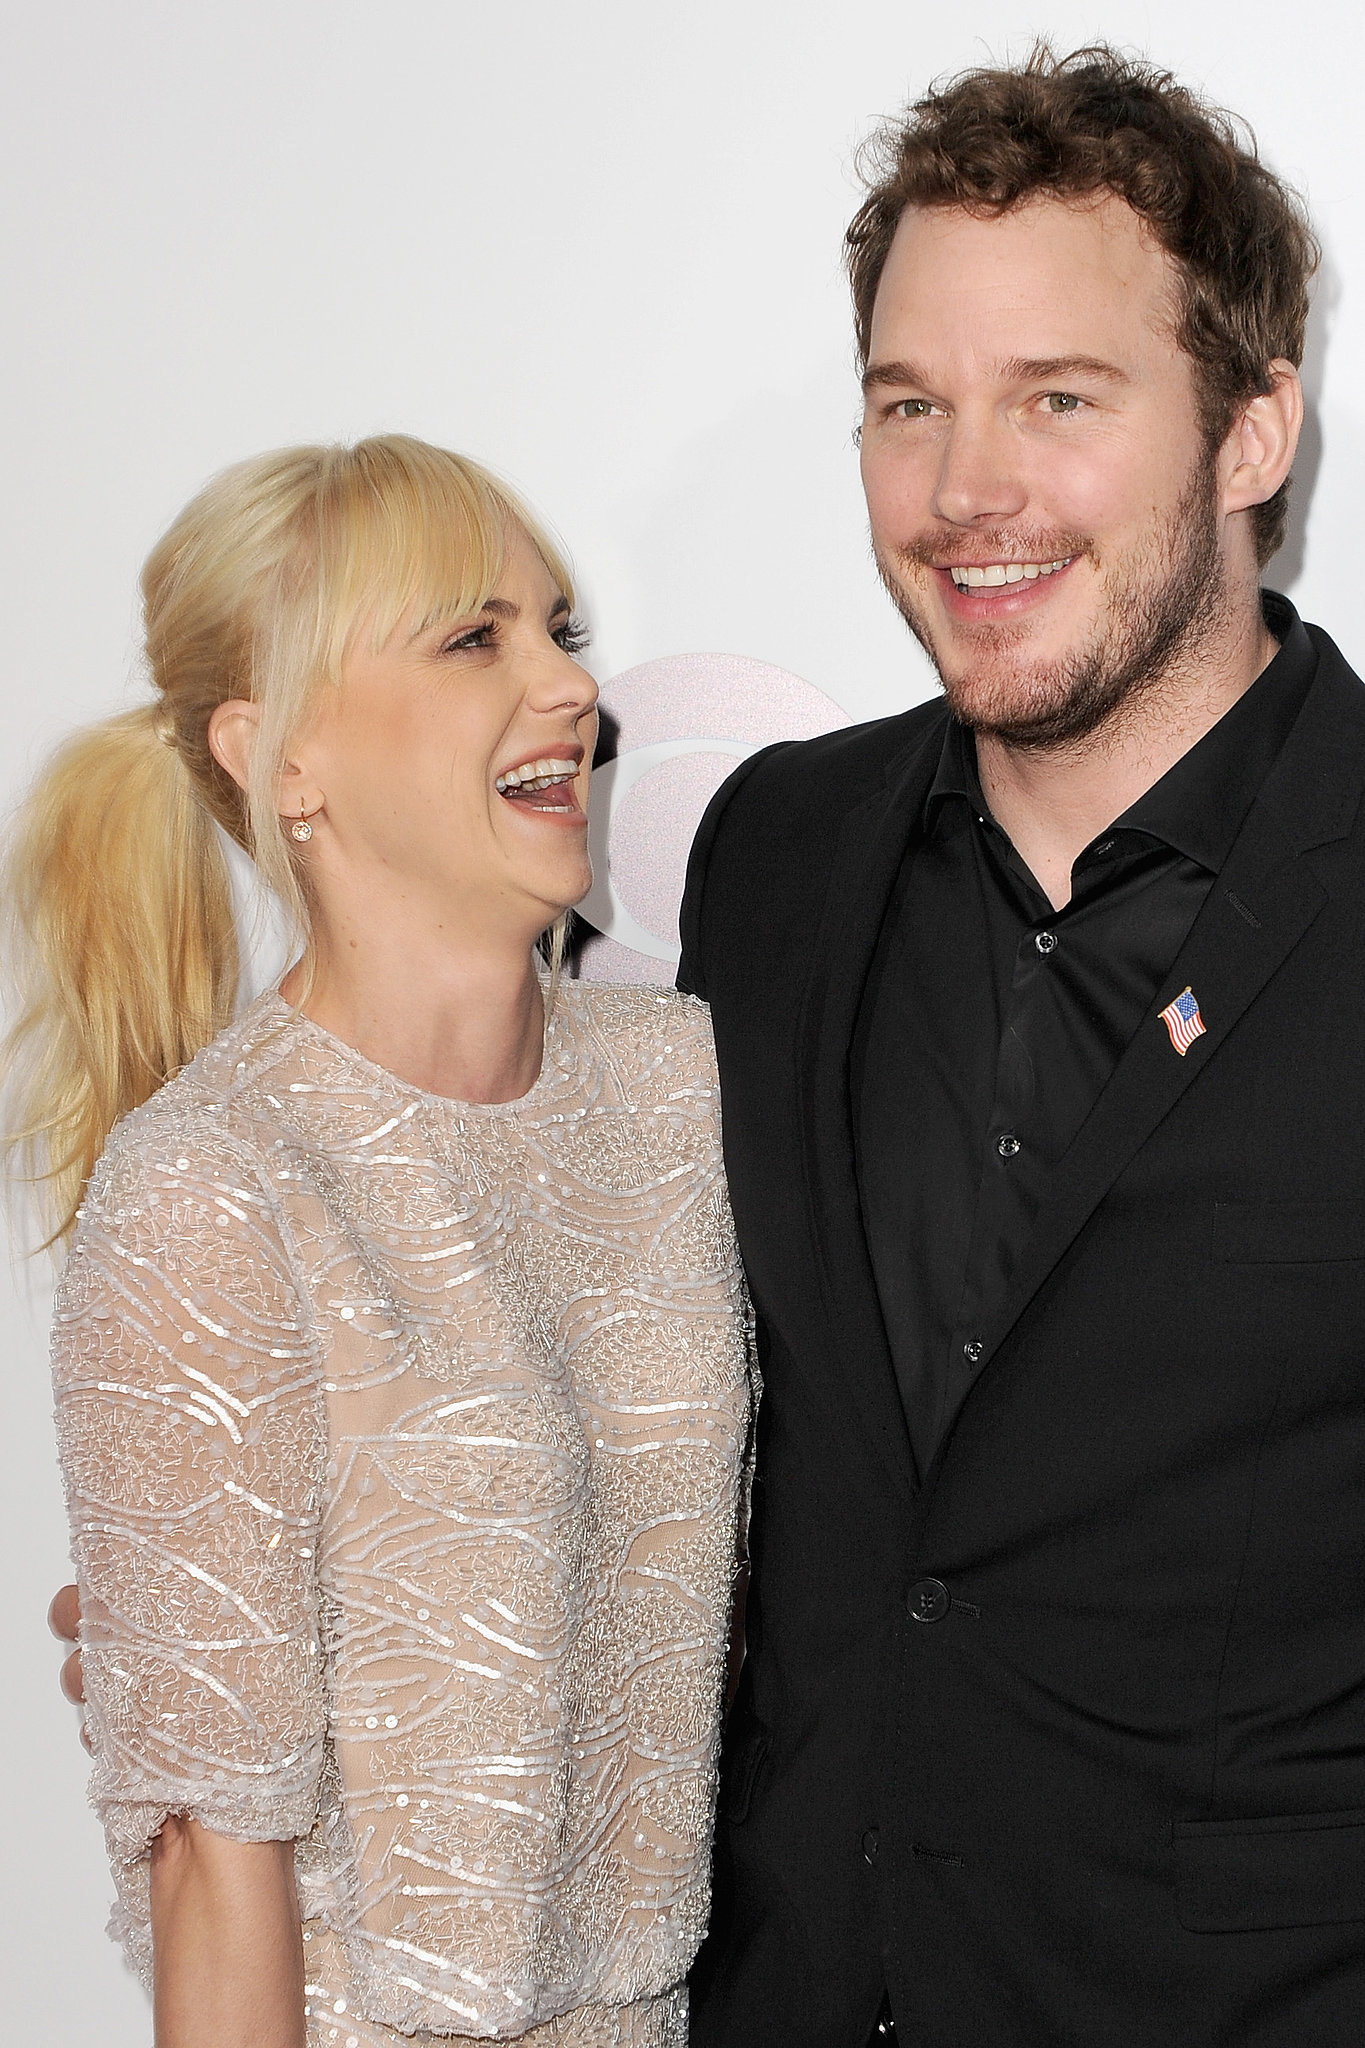 Anna and Chris shared a laugh at the 2014 People's Choice Awards in LA.